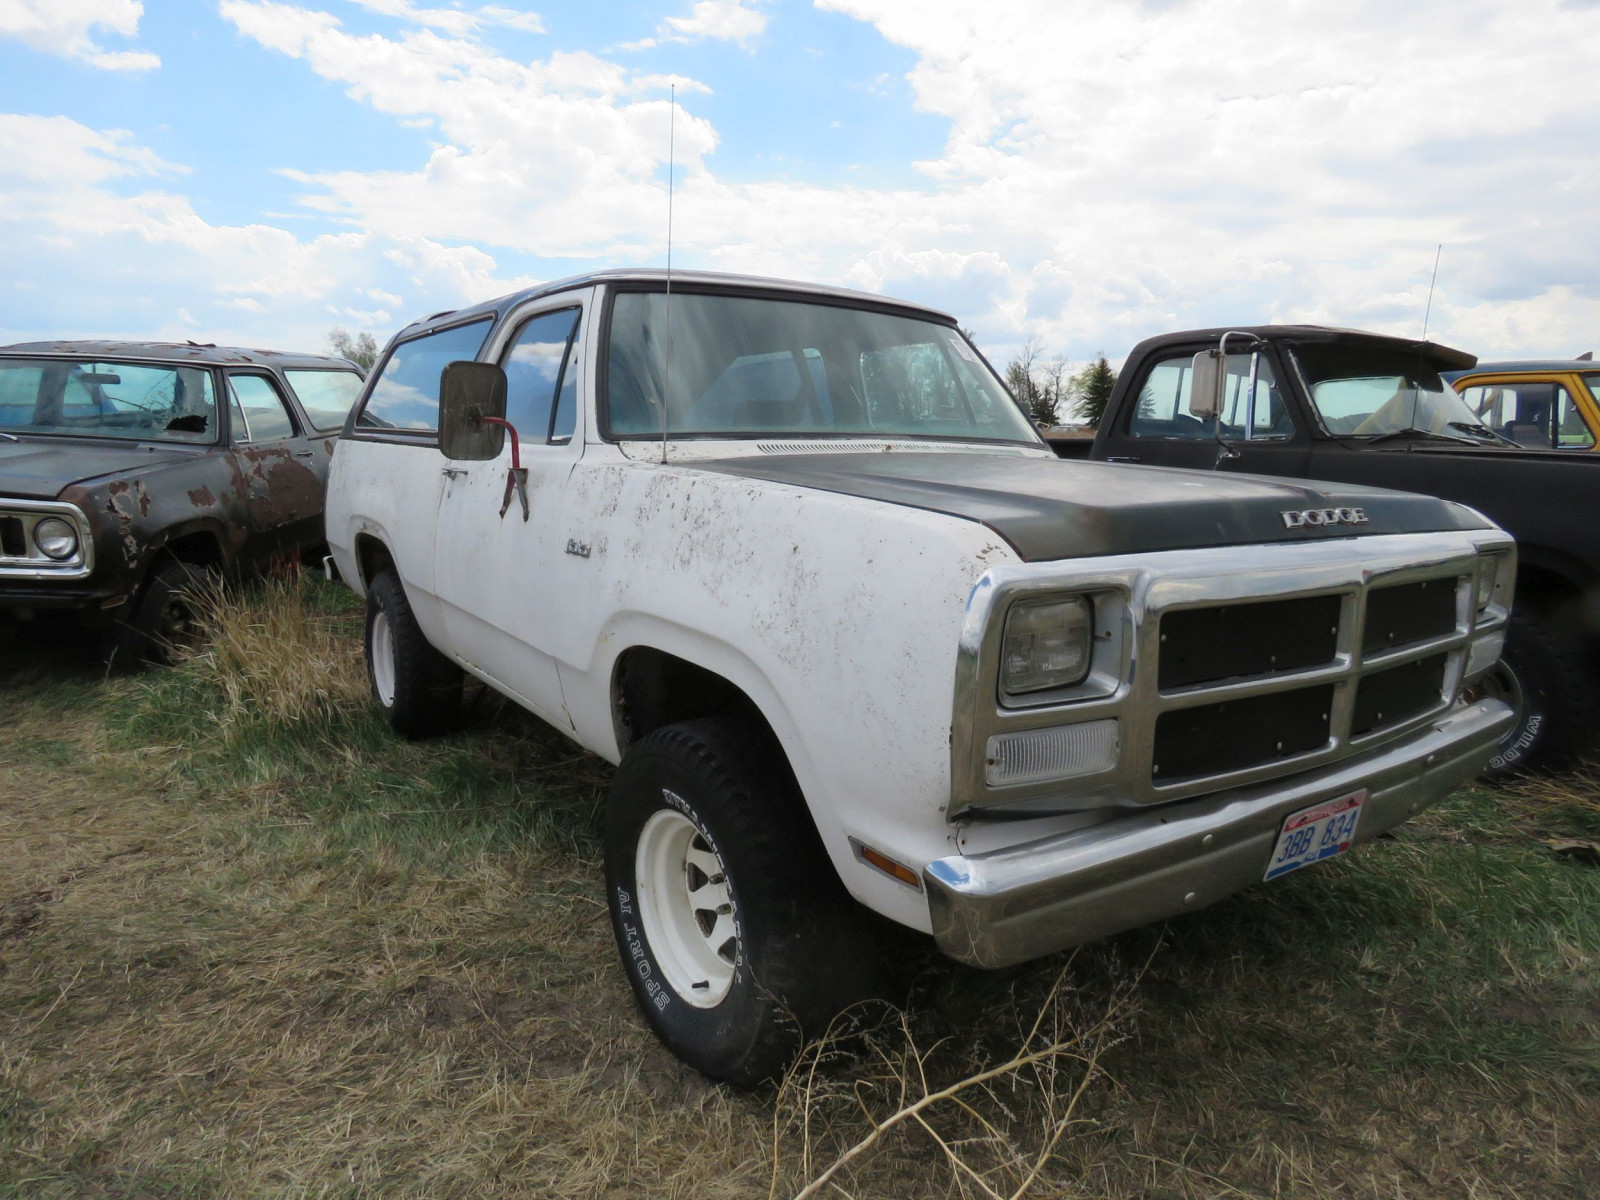 1977 Dodge D100 Pickup - Image 3